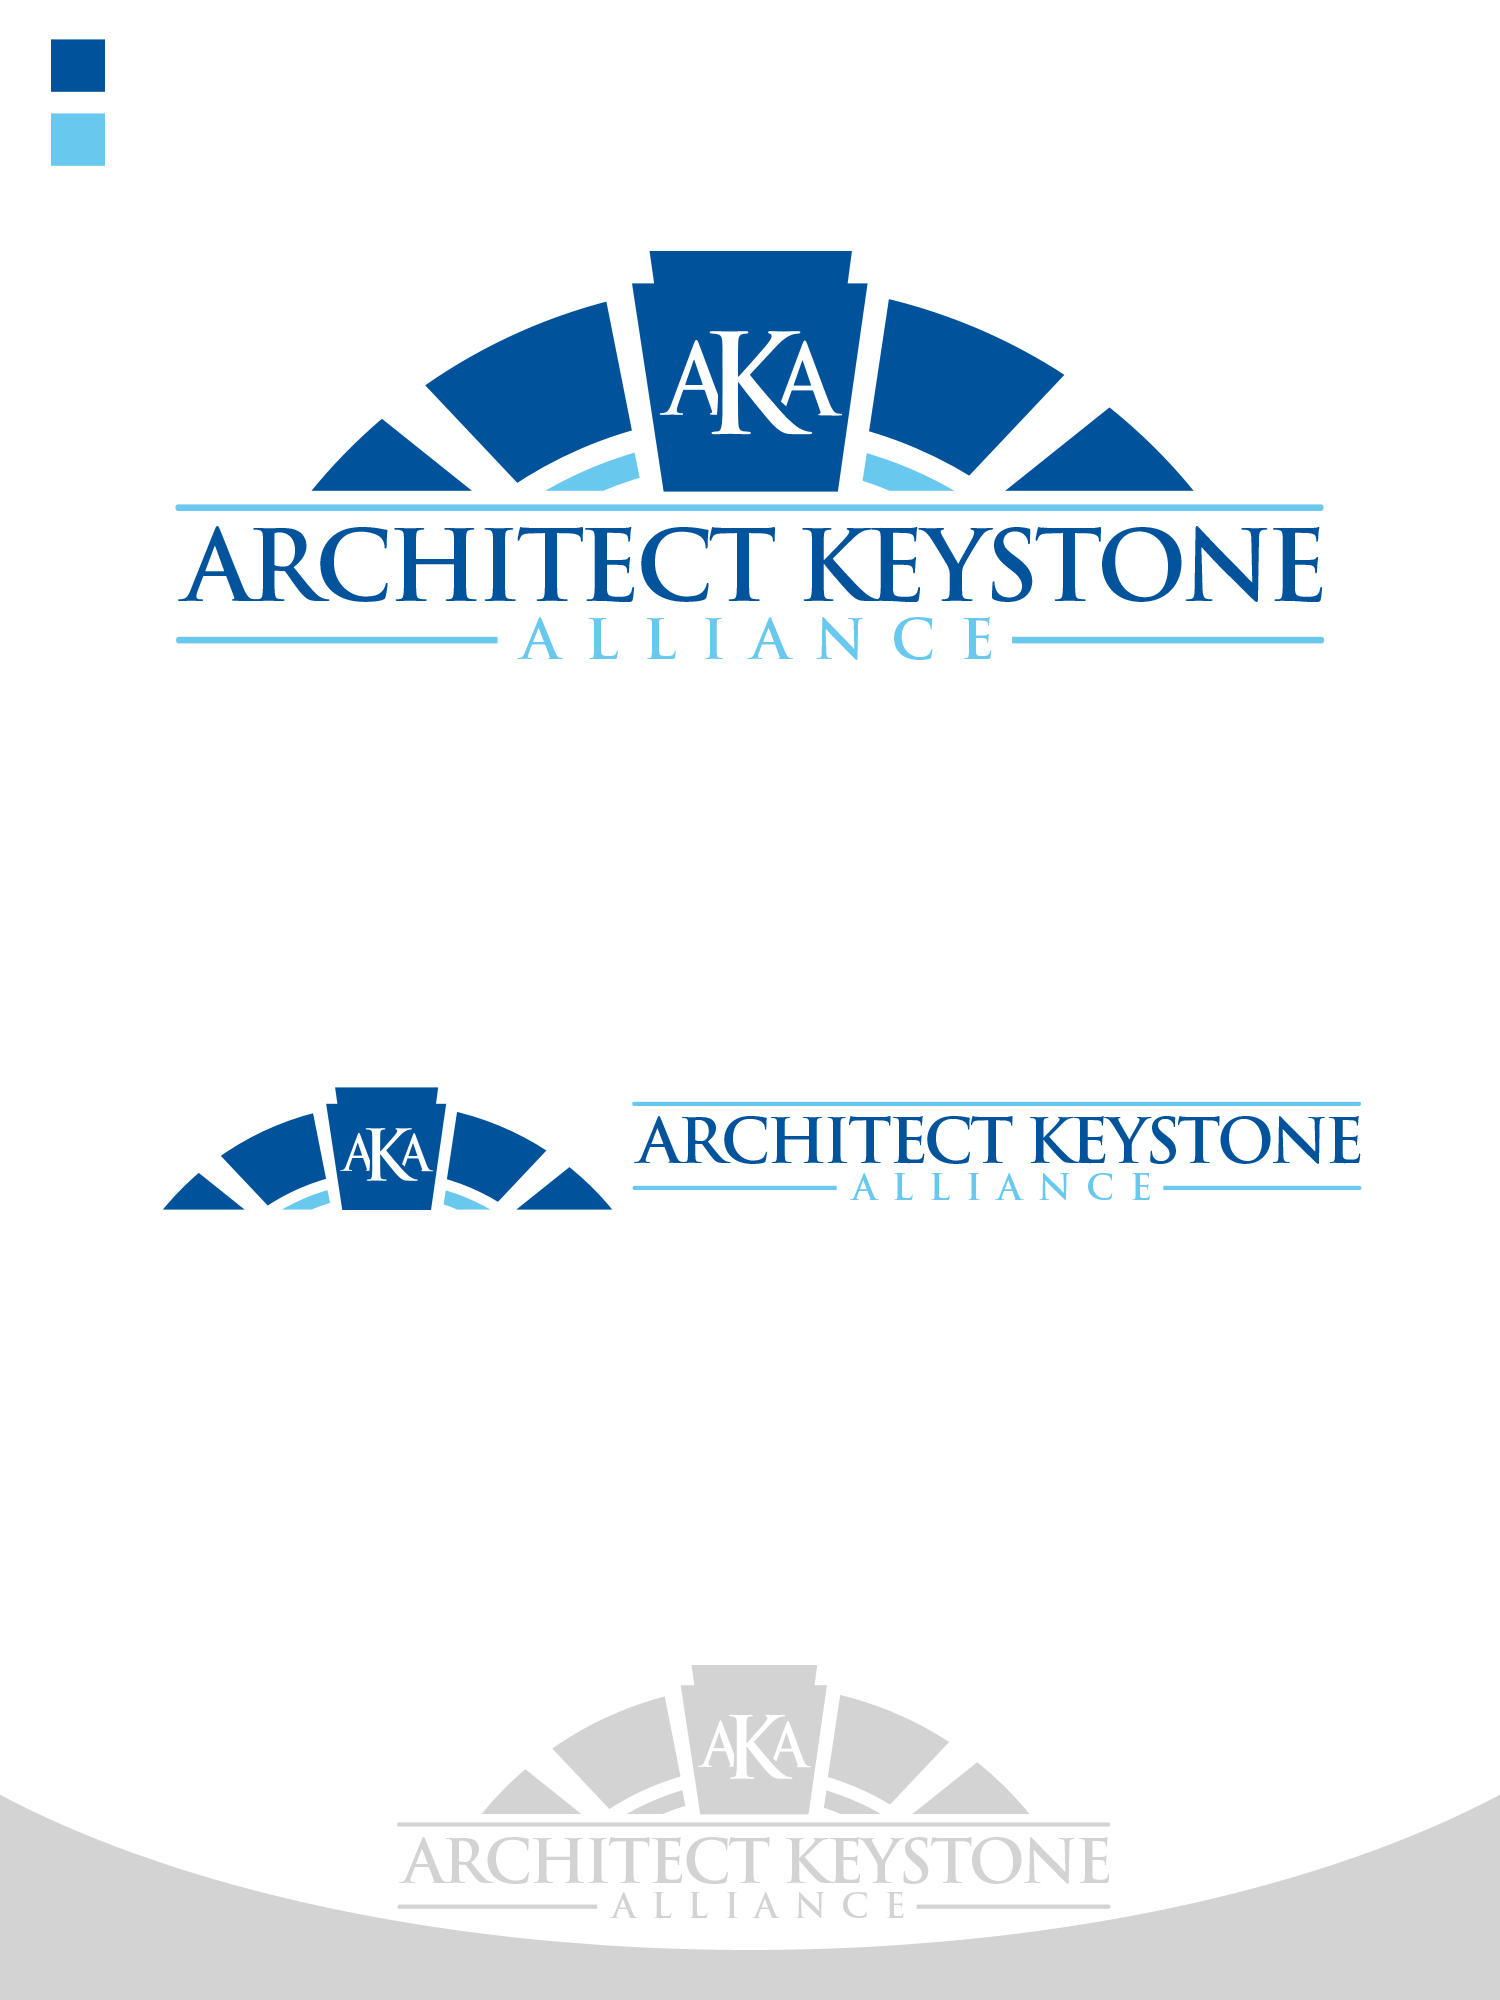 Creative, architectural influenced logo needed for 102-year-old company